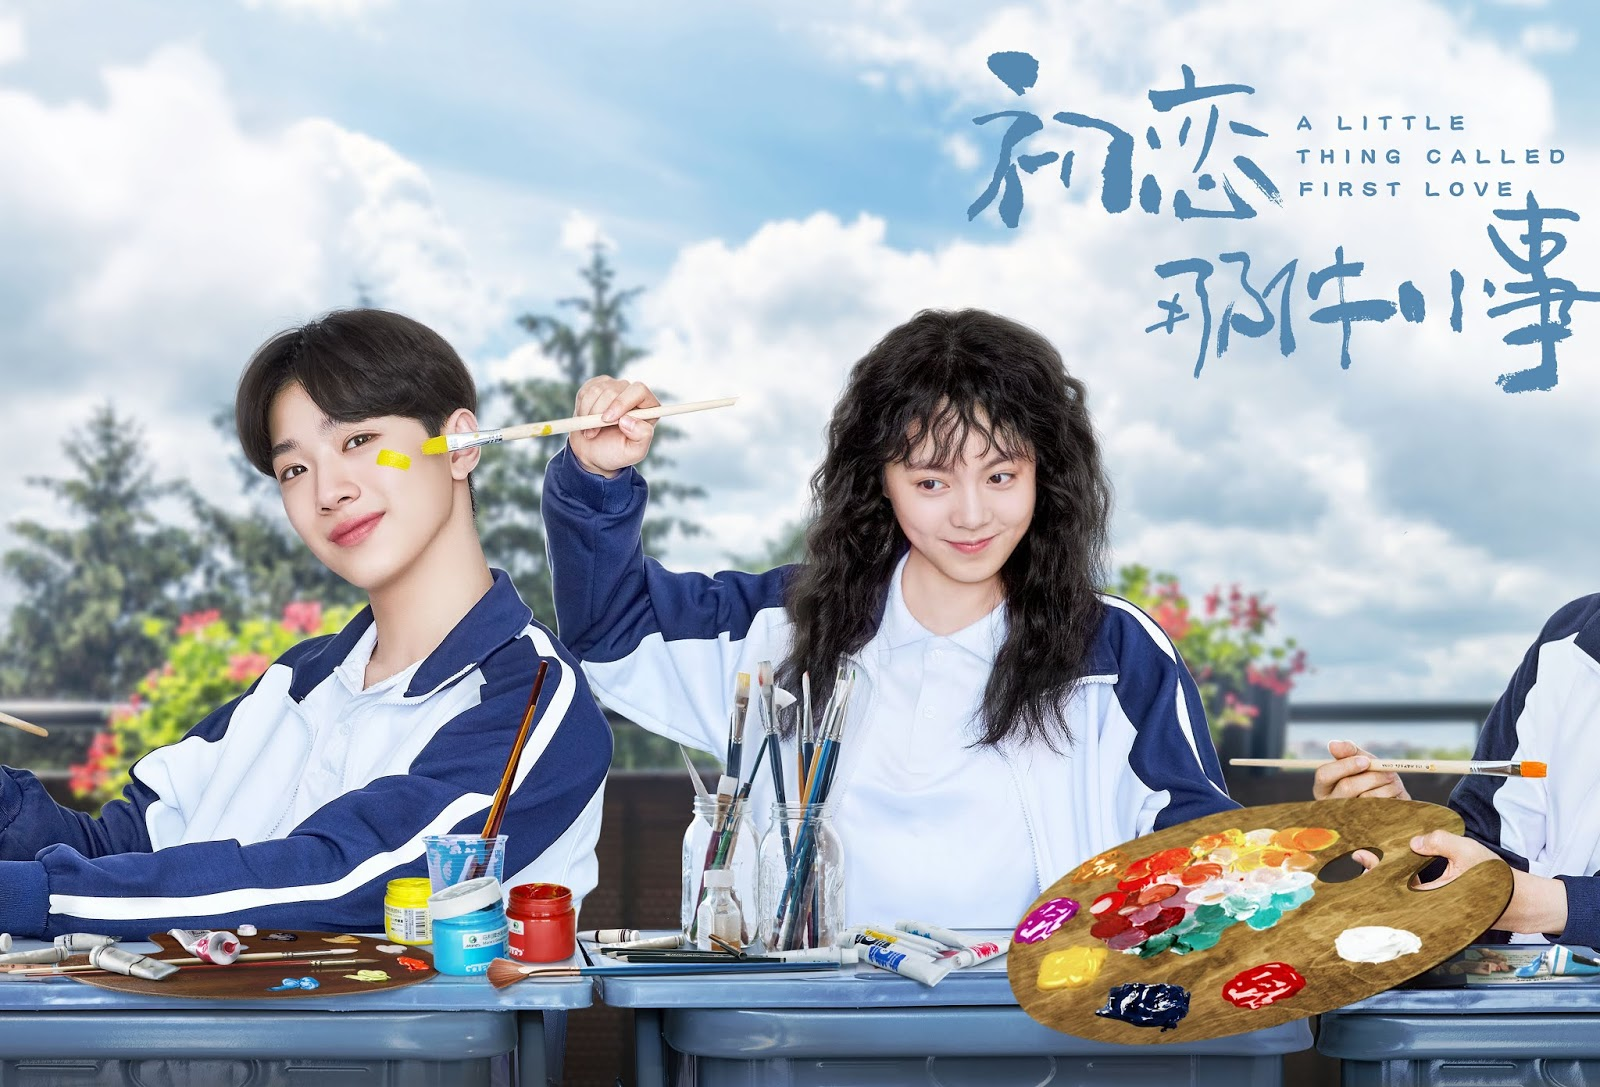 Cdrama Review A Little Thing Called First Love 2019 A Fangirl S Heart Entertainment And Lifestyle Blog